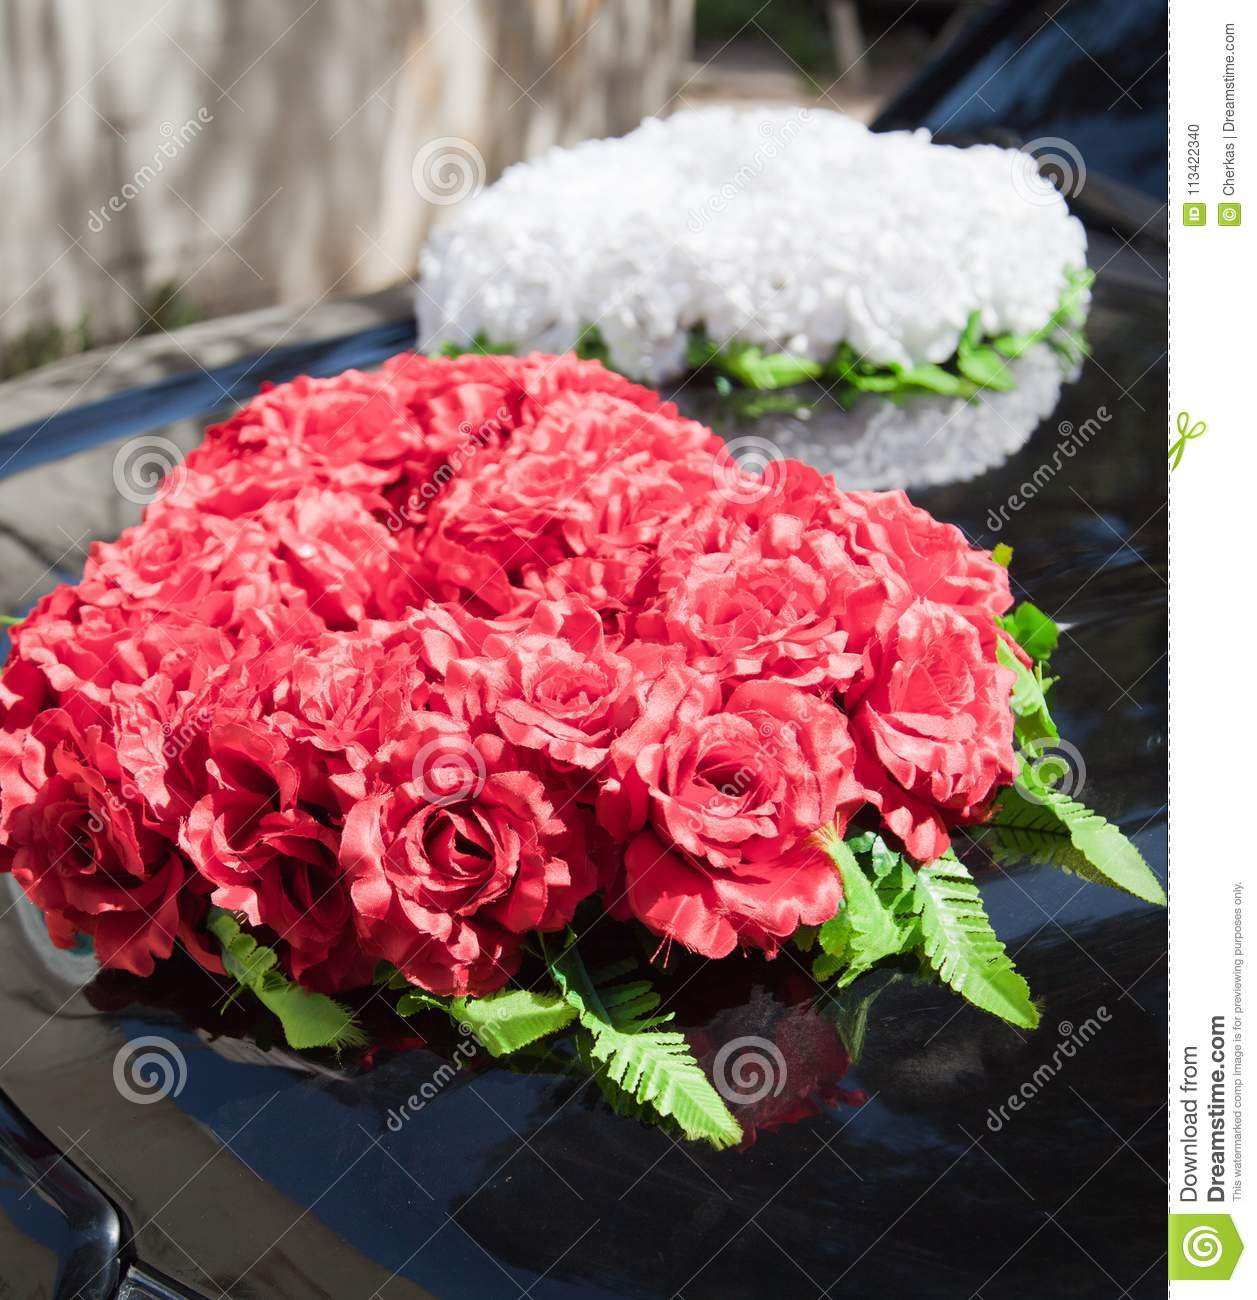 Red And White Bouquet Of Flowers Stock Photo - Image of auto ...